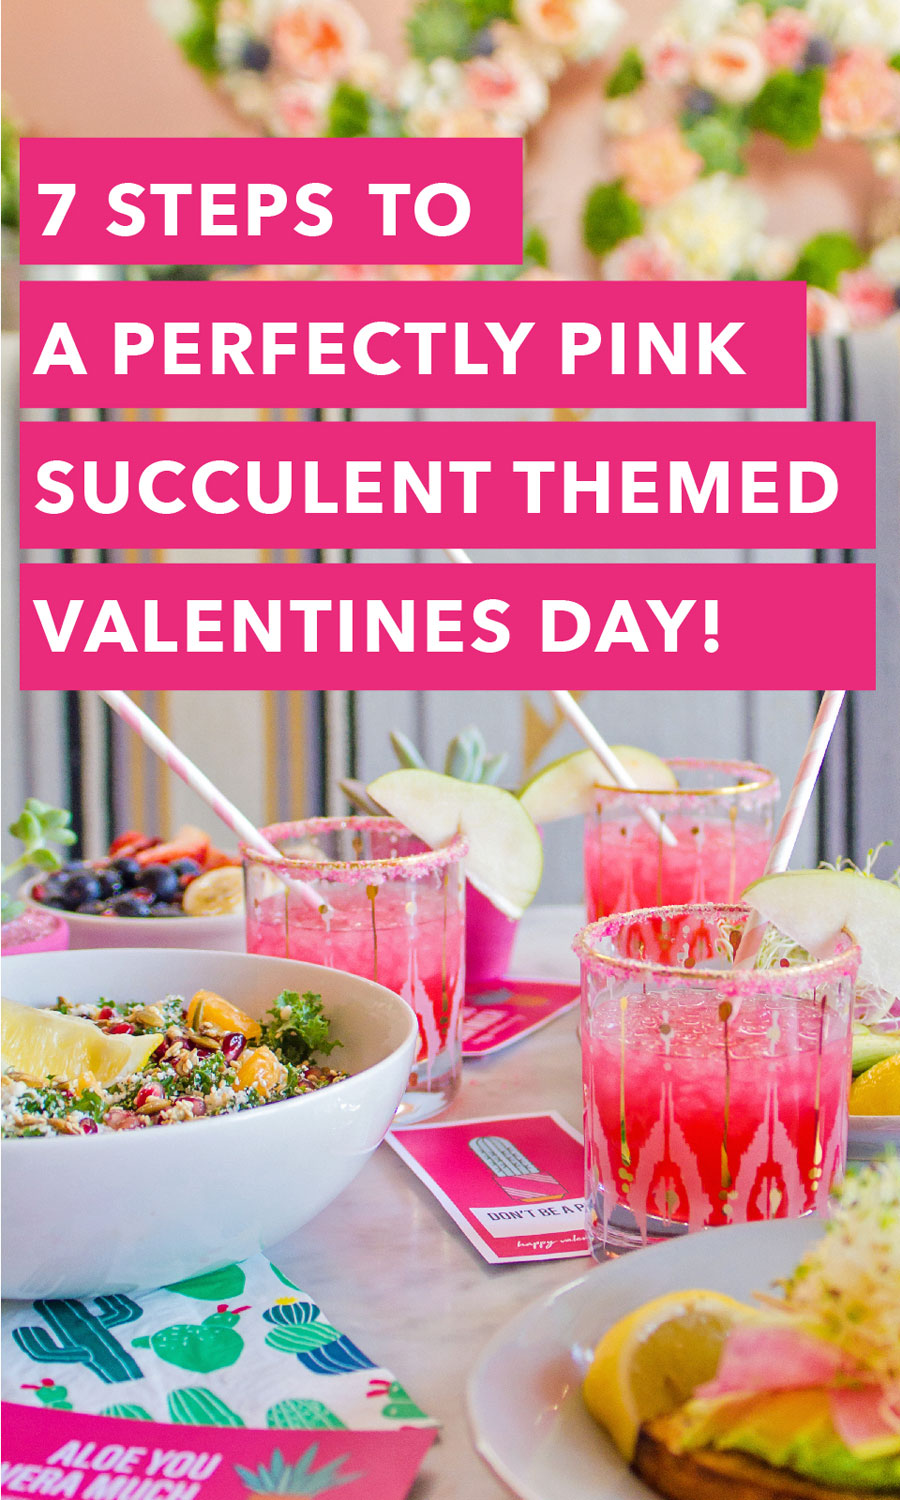 7 Steps to a Perfectly Pink Succulent Themed Valentine's Day